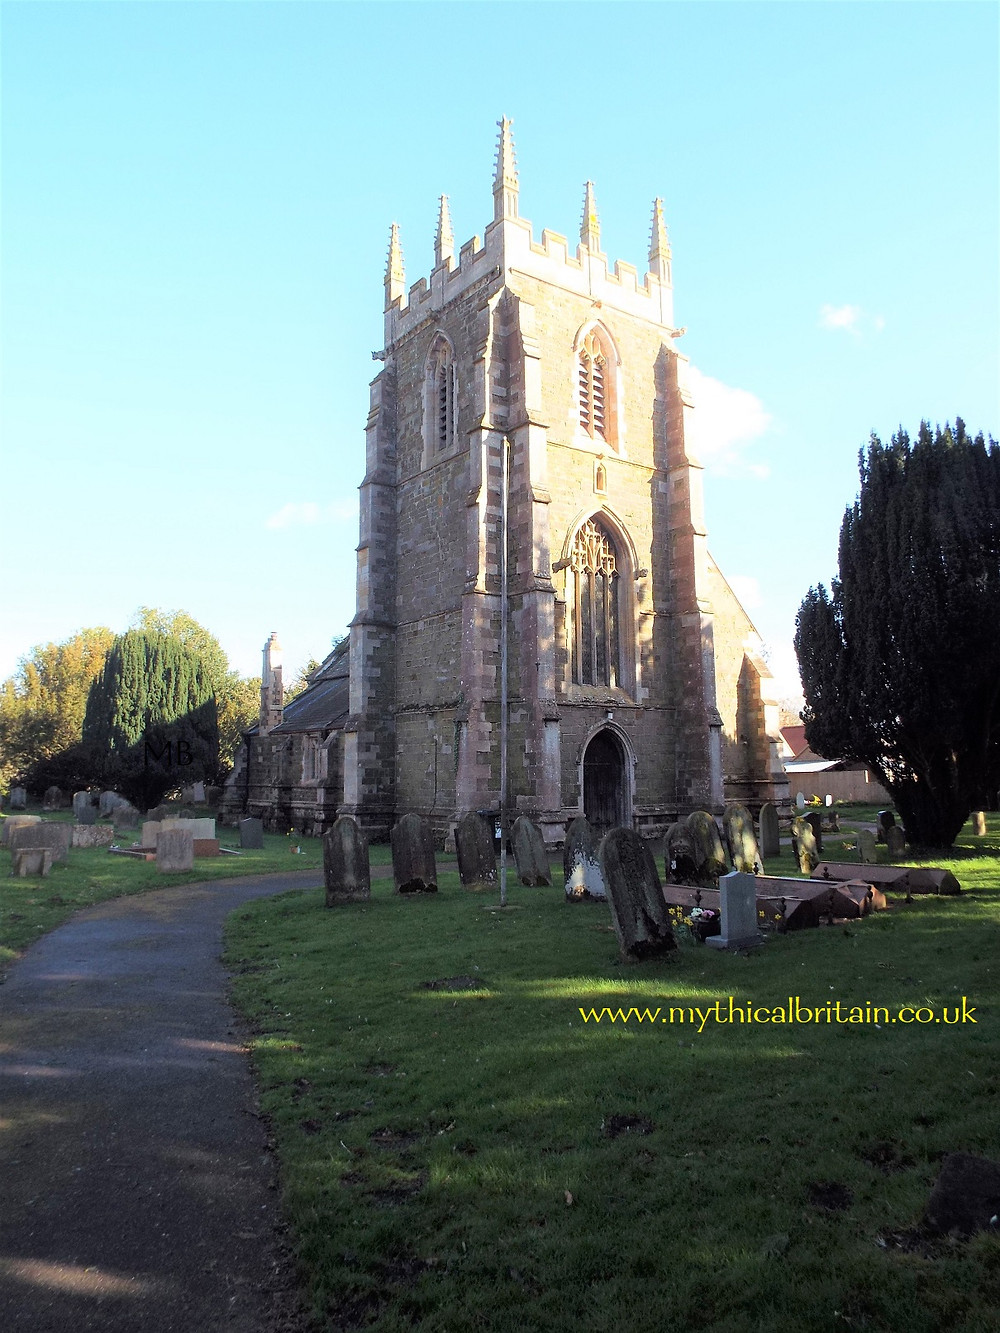 Image of the Church of Saints Peter and Paul, Bolingbroke, Lincolnshire